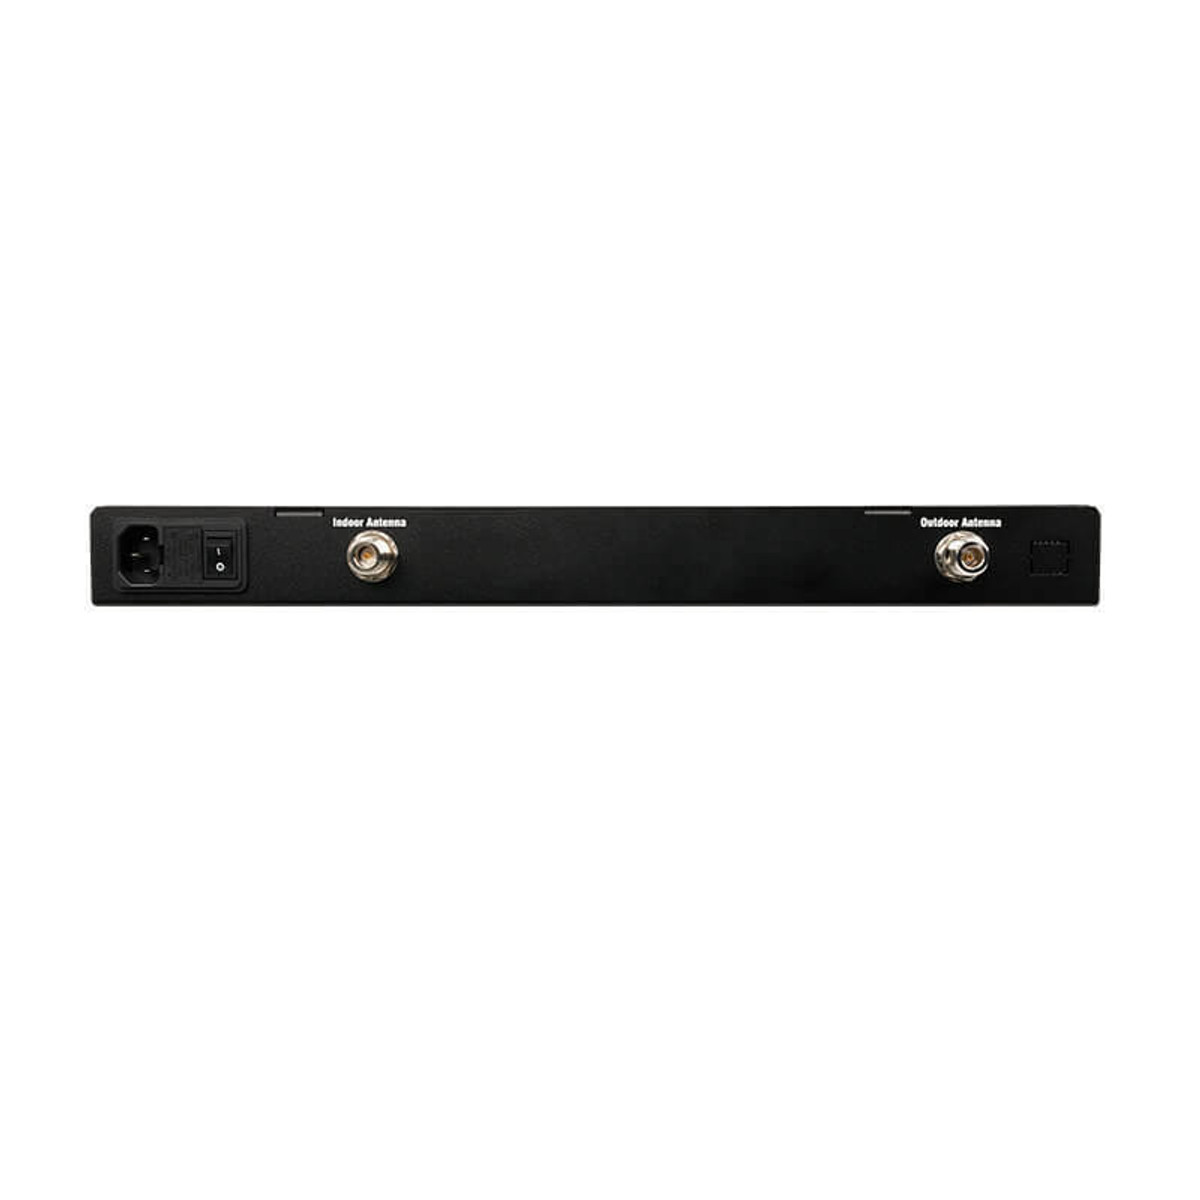 Wilson Pro Wilson Pro 1000R Rack-Mounted Commercial Booster, Refurbished or 460237R